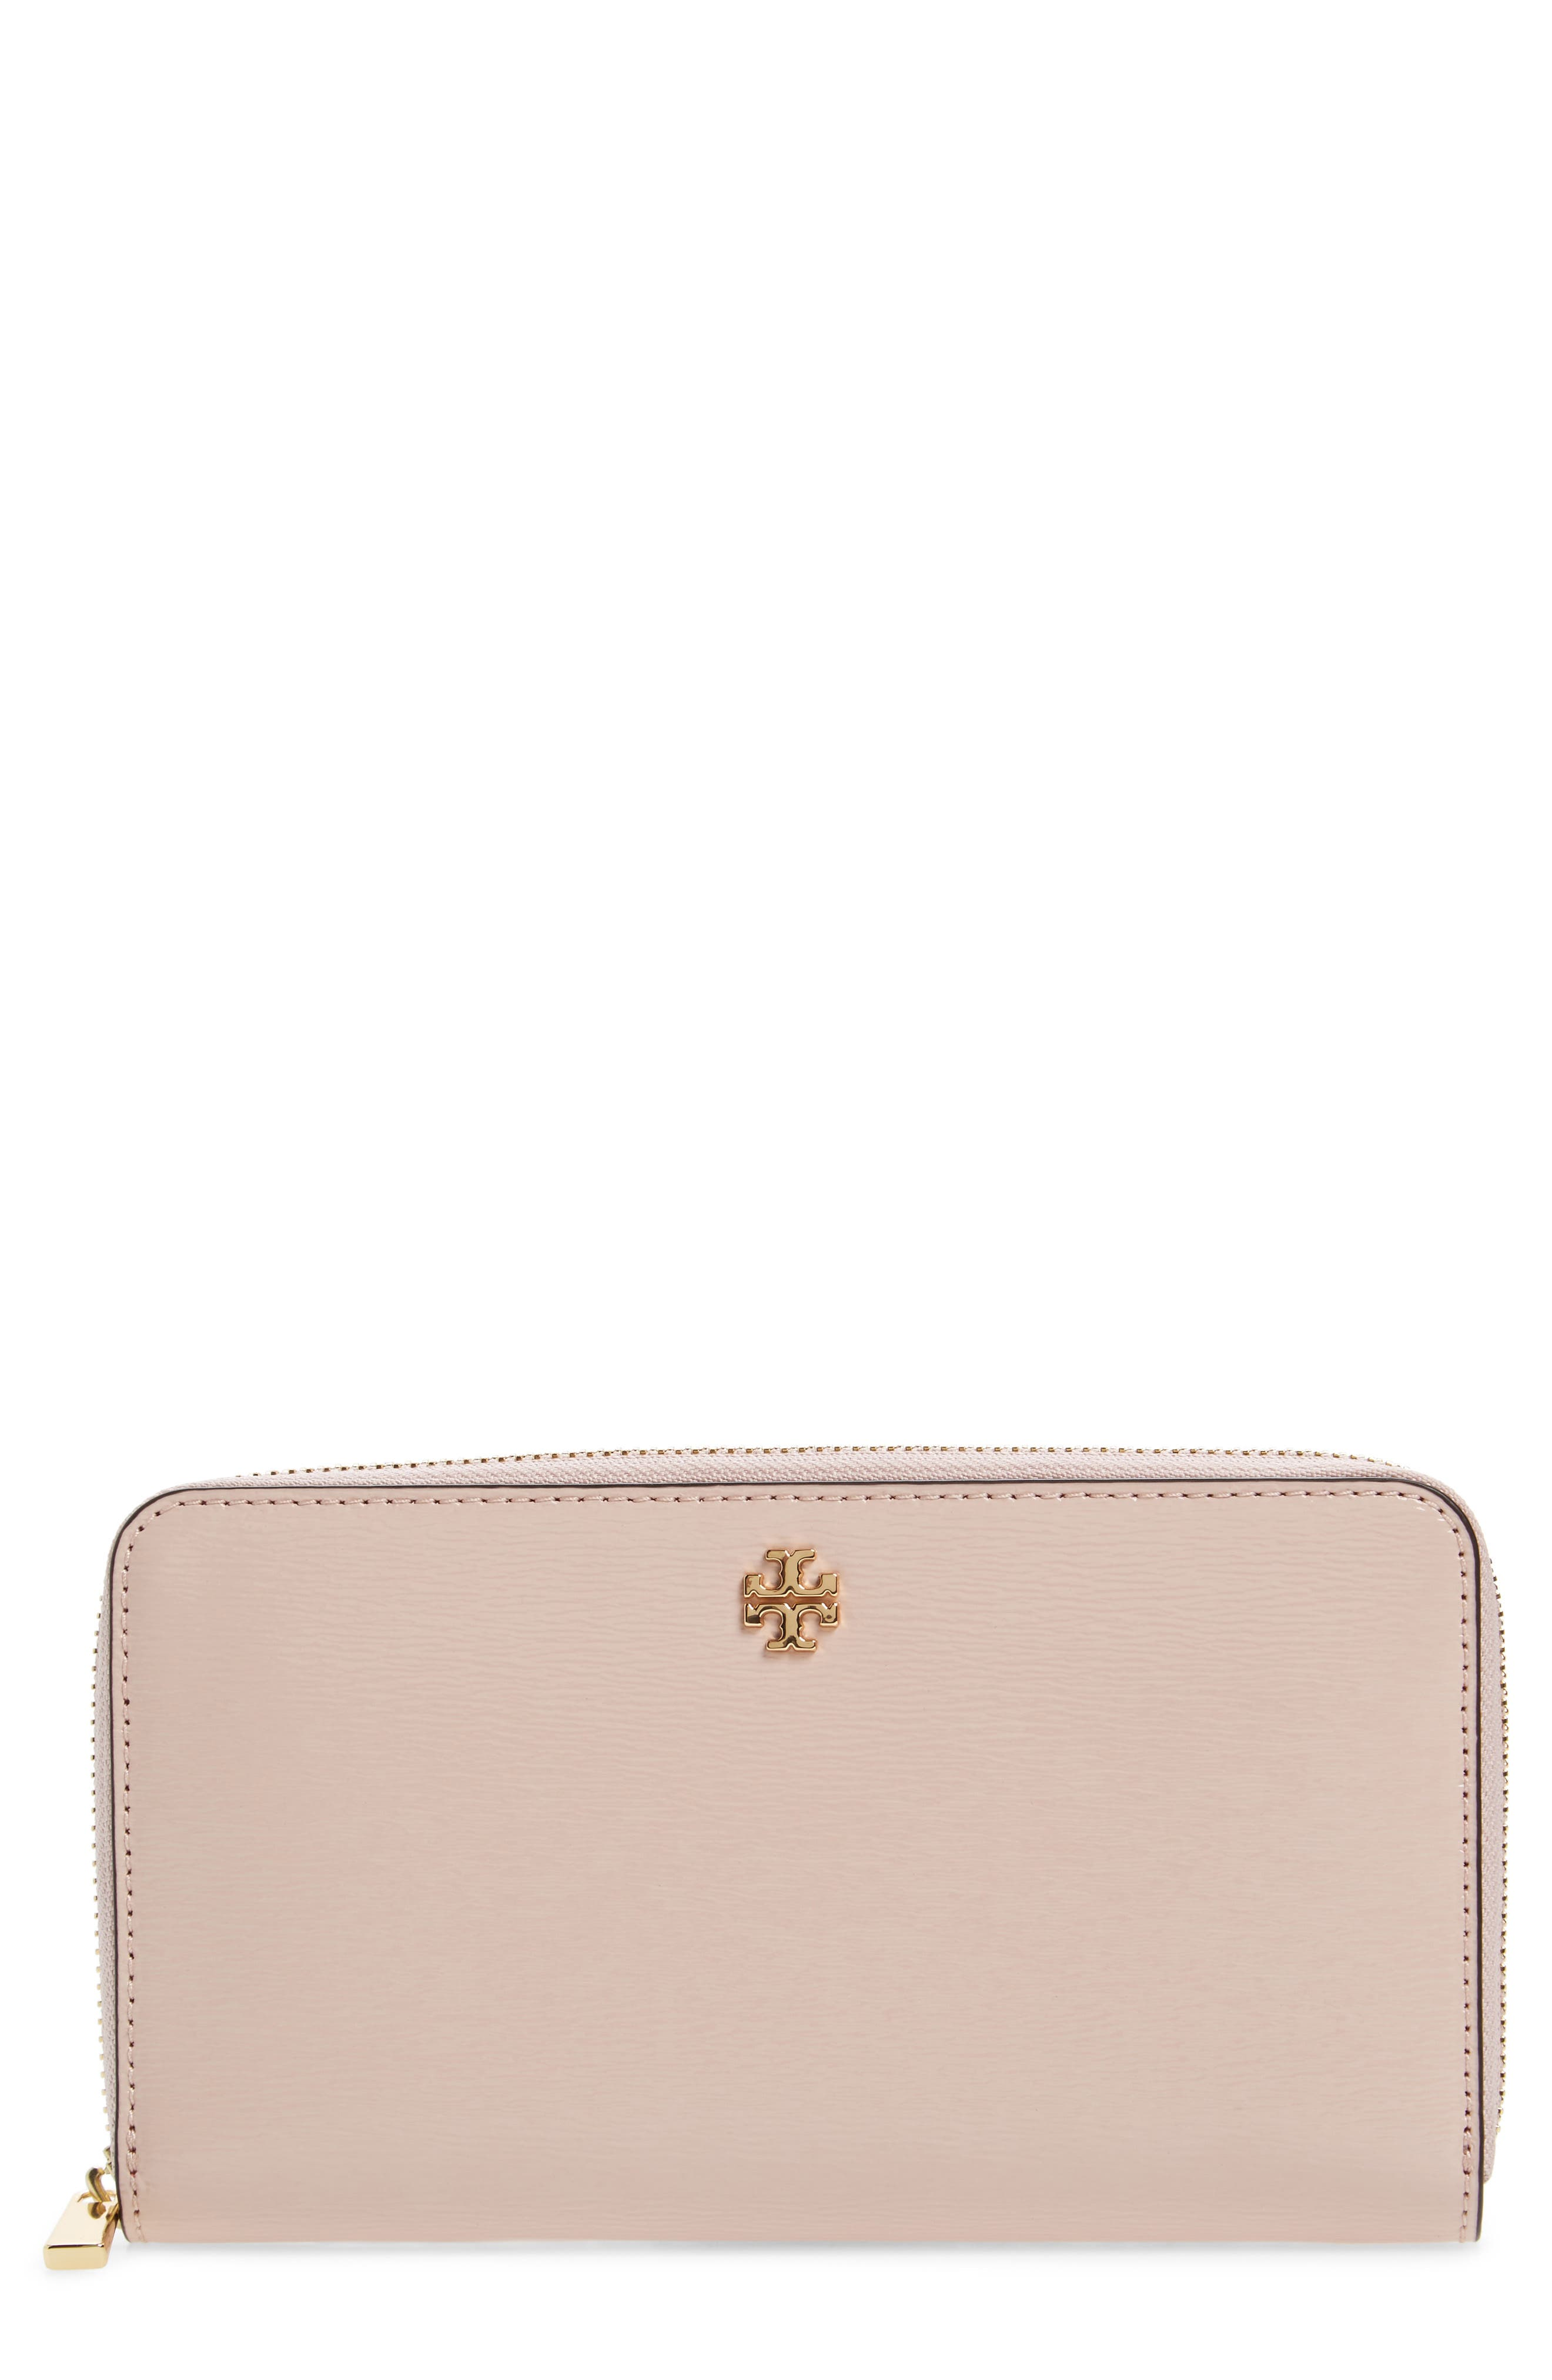 Robinson Patent Leather Continental Wallet,                             Main thumbnail 1, color,                             Shell Pink